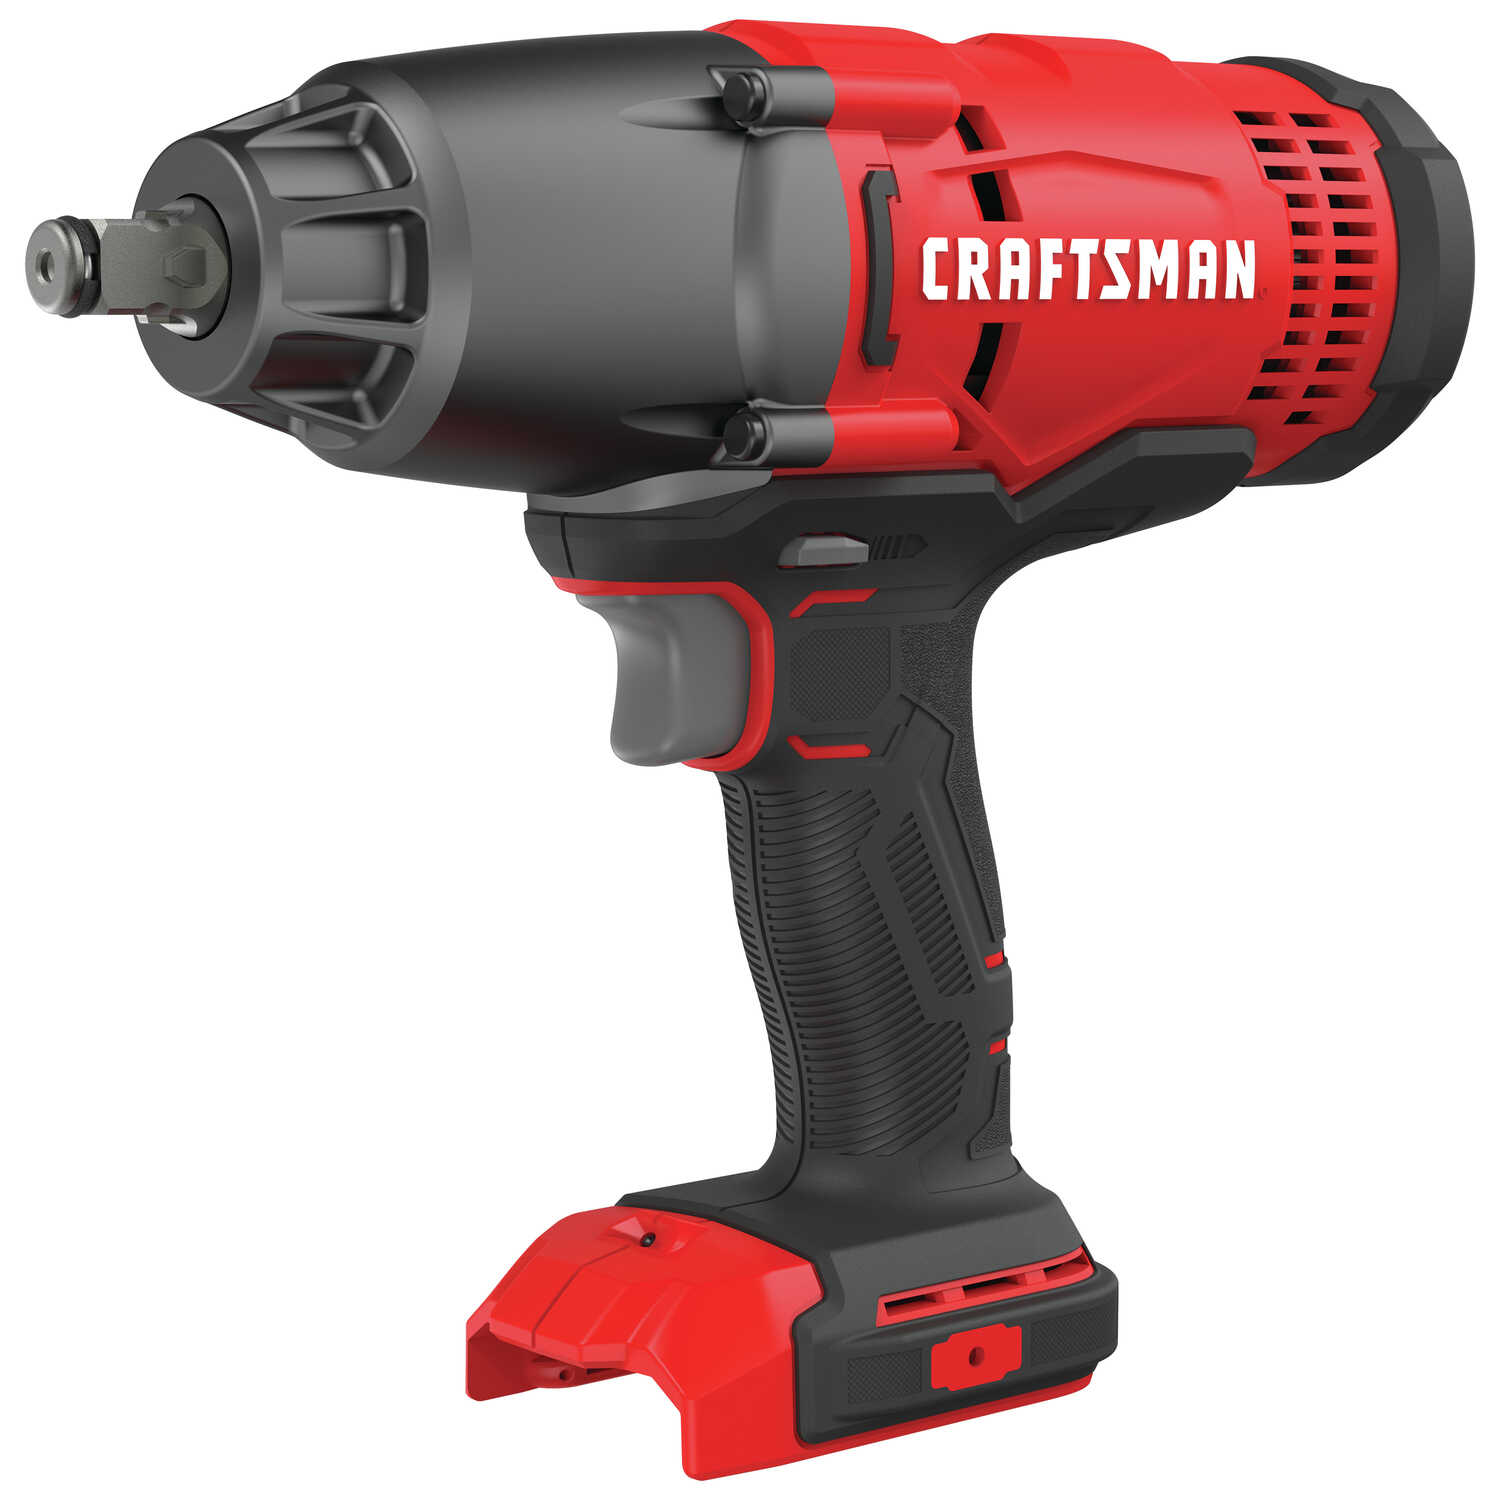 Craftsman  20V MAX  1/2 in. Cordless  Impact Wrench  20 volt 330 ft./lbs.